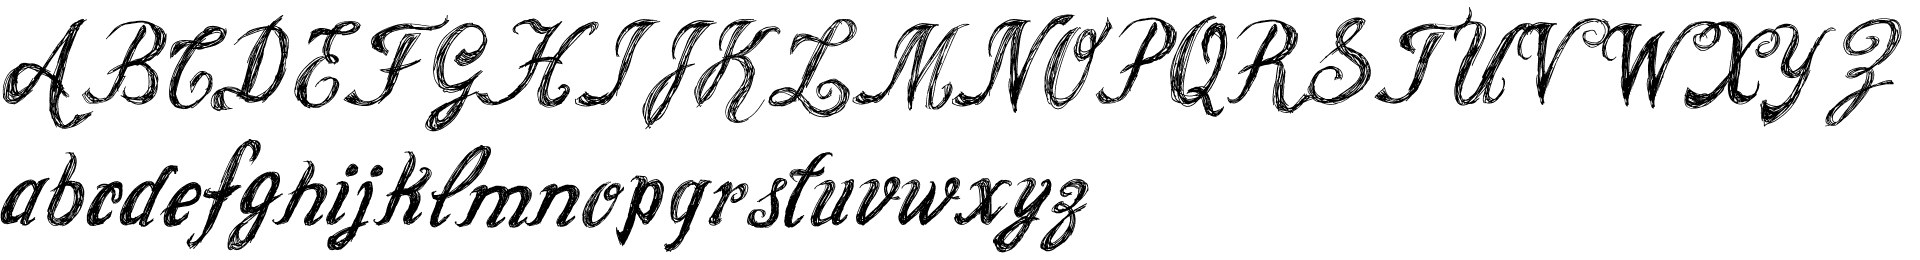 Cursive Option Italic